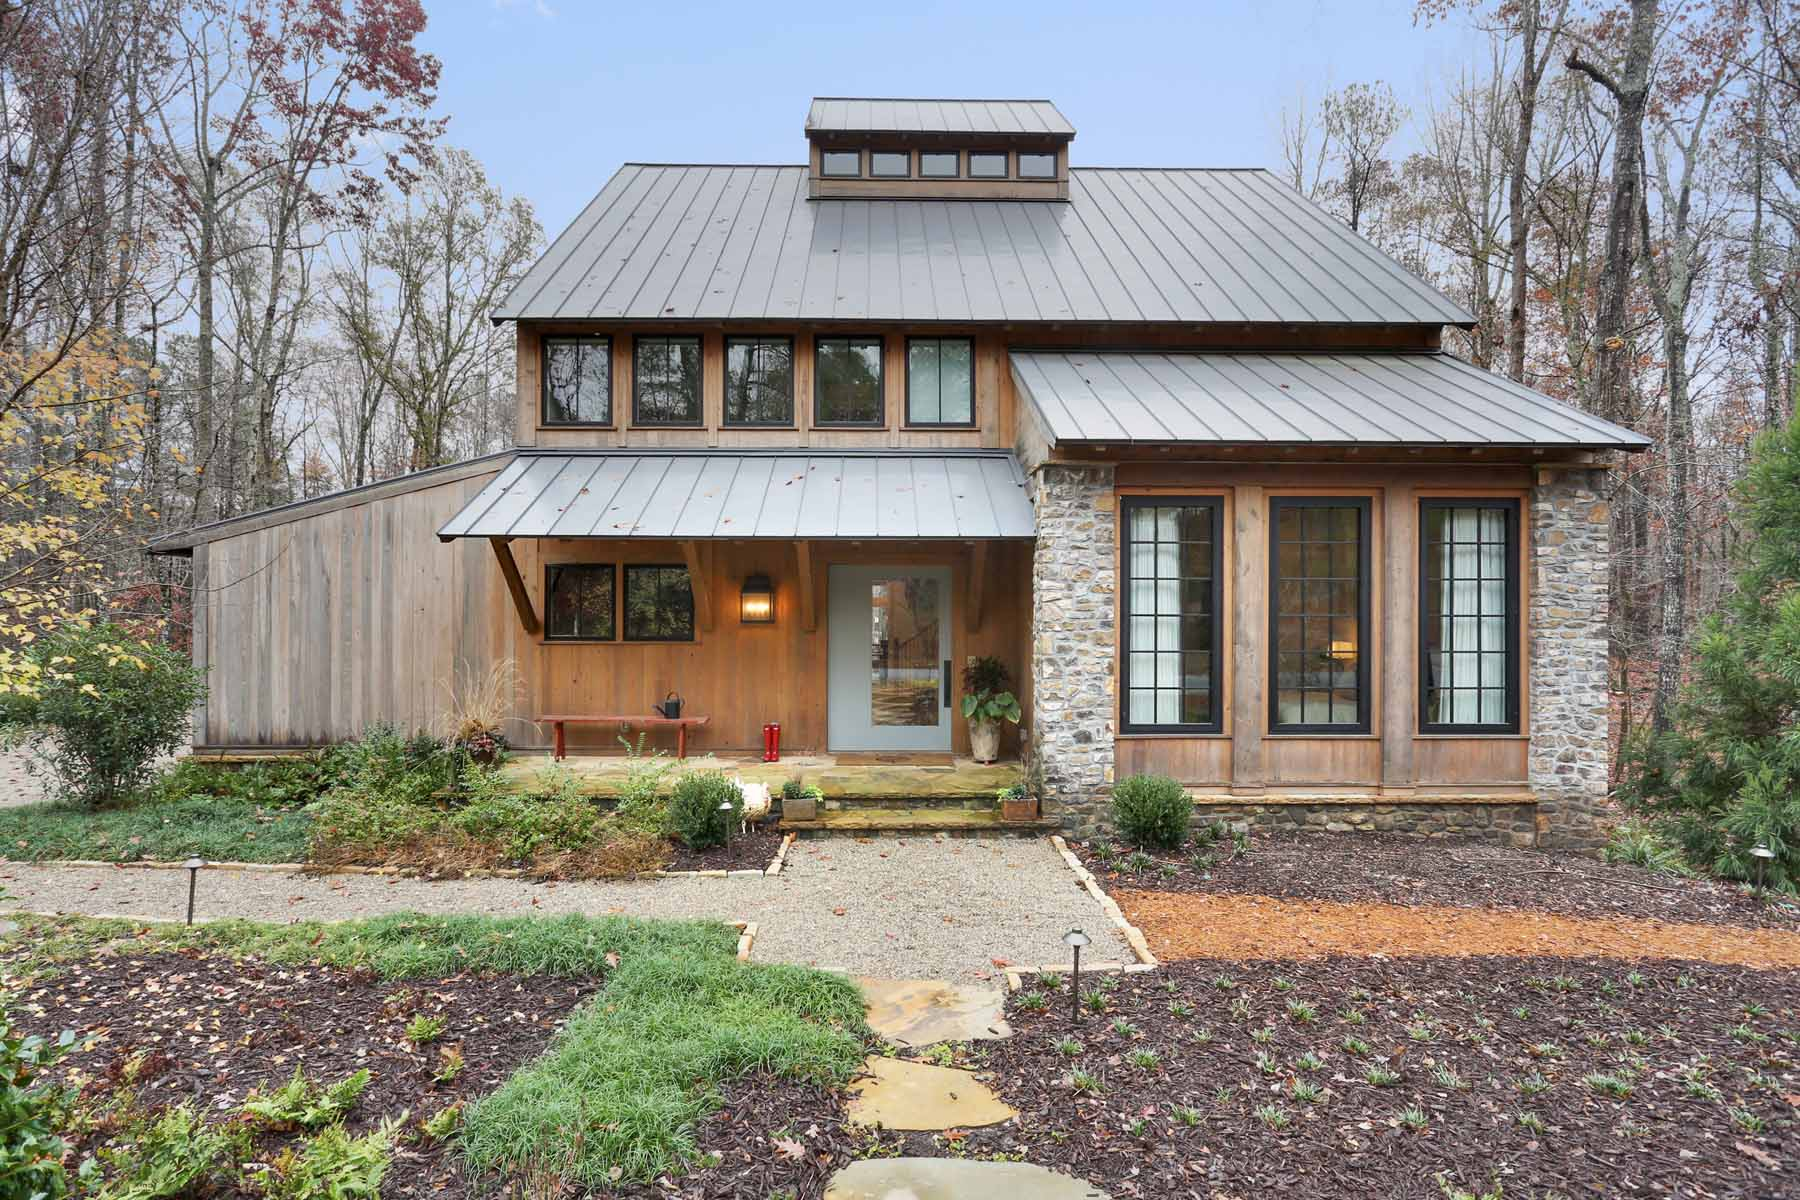 단독 가정 주택 용 매매 에 Serenbe Home Inspired by Sophisticated Farmhouse Look 9023 Selborne Lane Chattahoochee Hills, 조지아 30268 미국